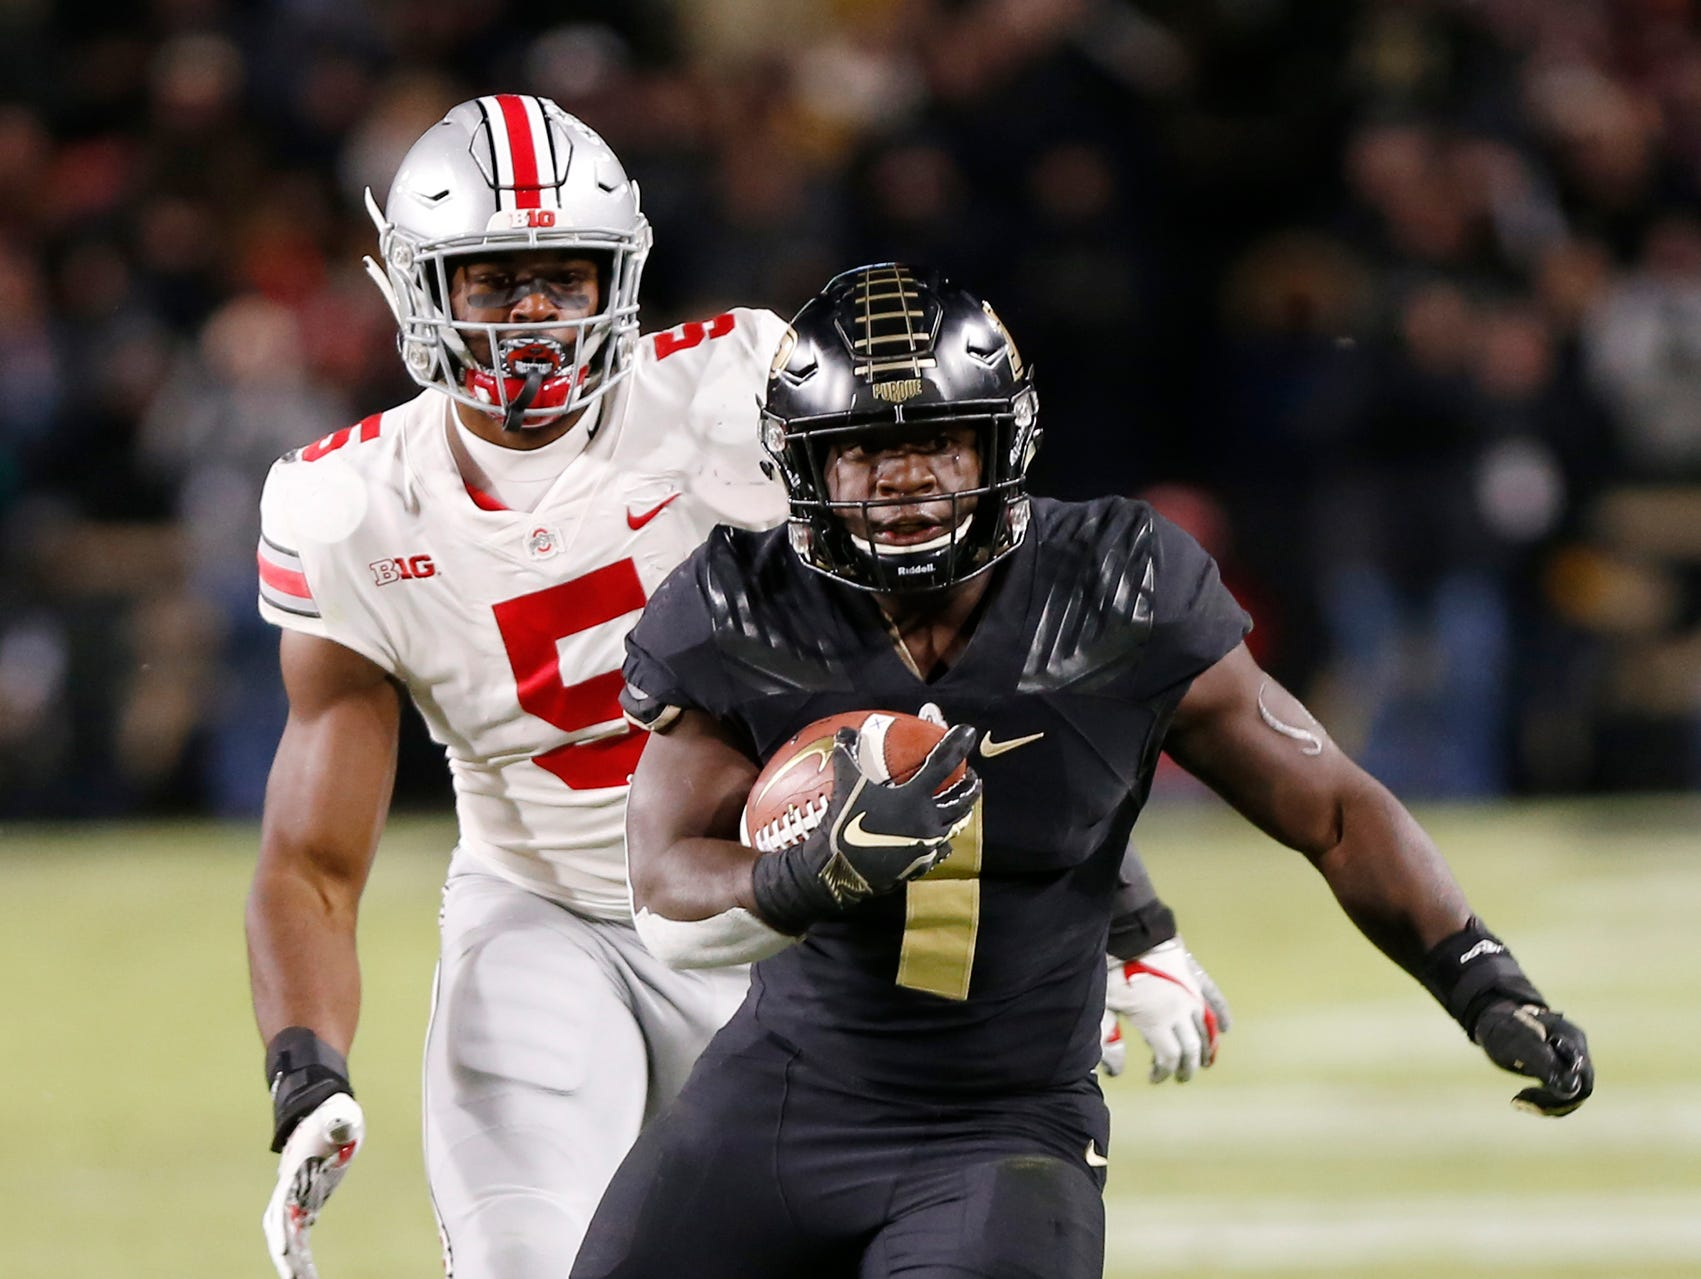 D. J. Knox of Purdue with a first half carry against Ohio State Saturday, October 20, 2018, at Ross-Ade Stadium.